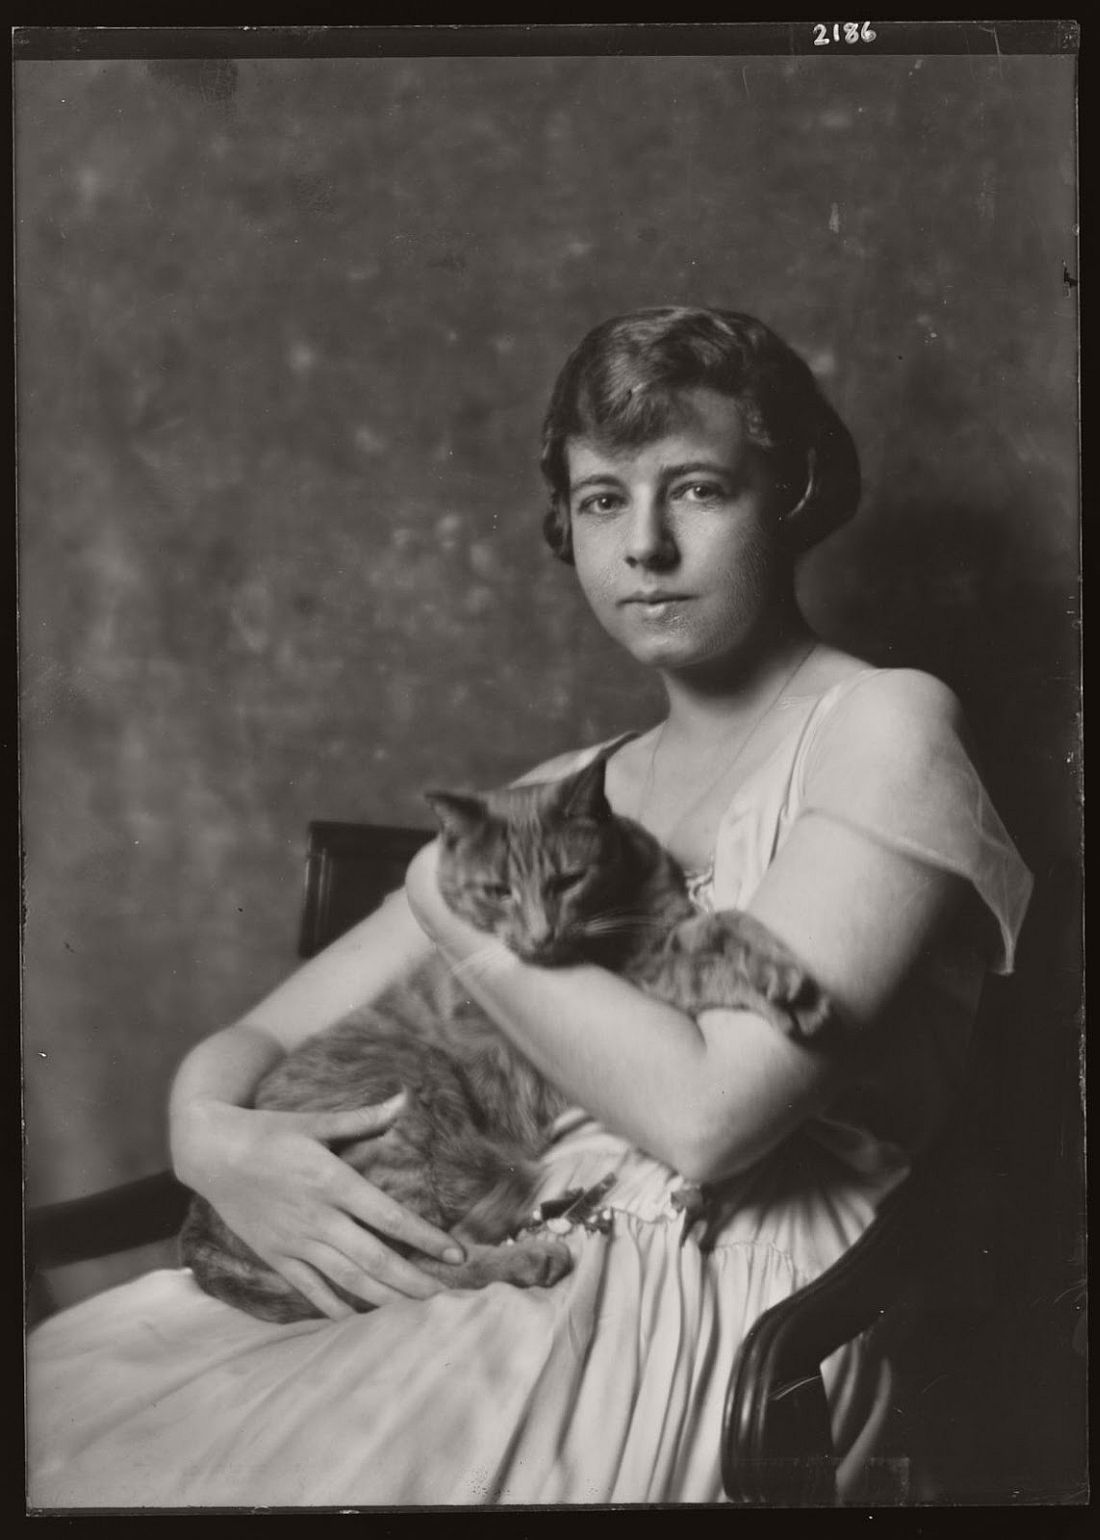 arnold-genthe-1910s-vintage-studio-portraits-of-girls-with-cat-15